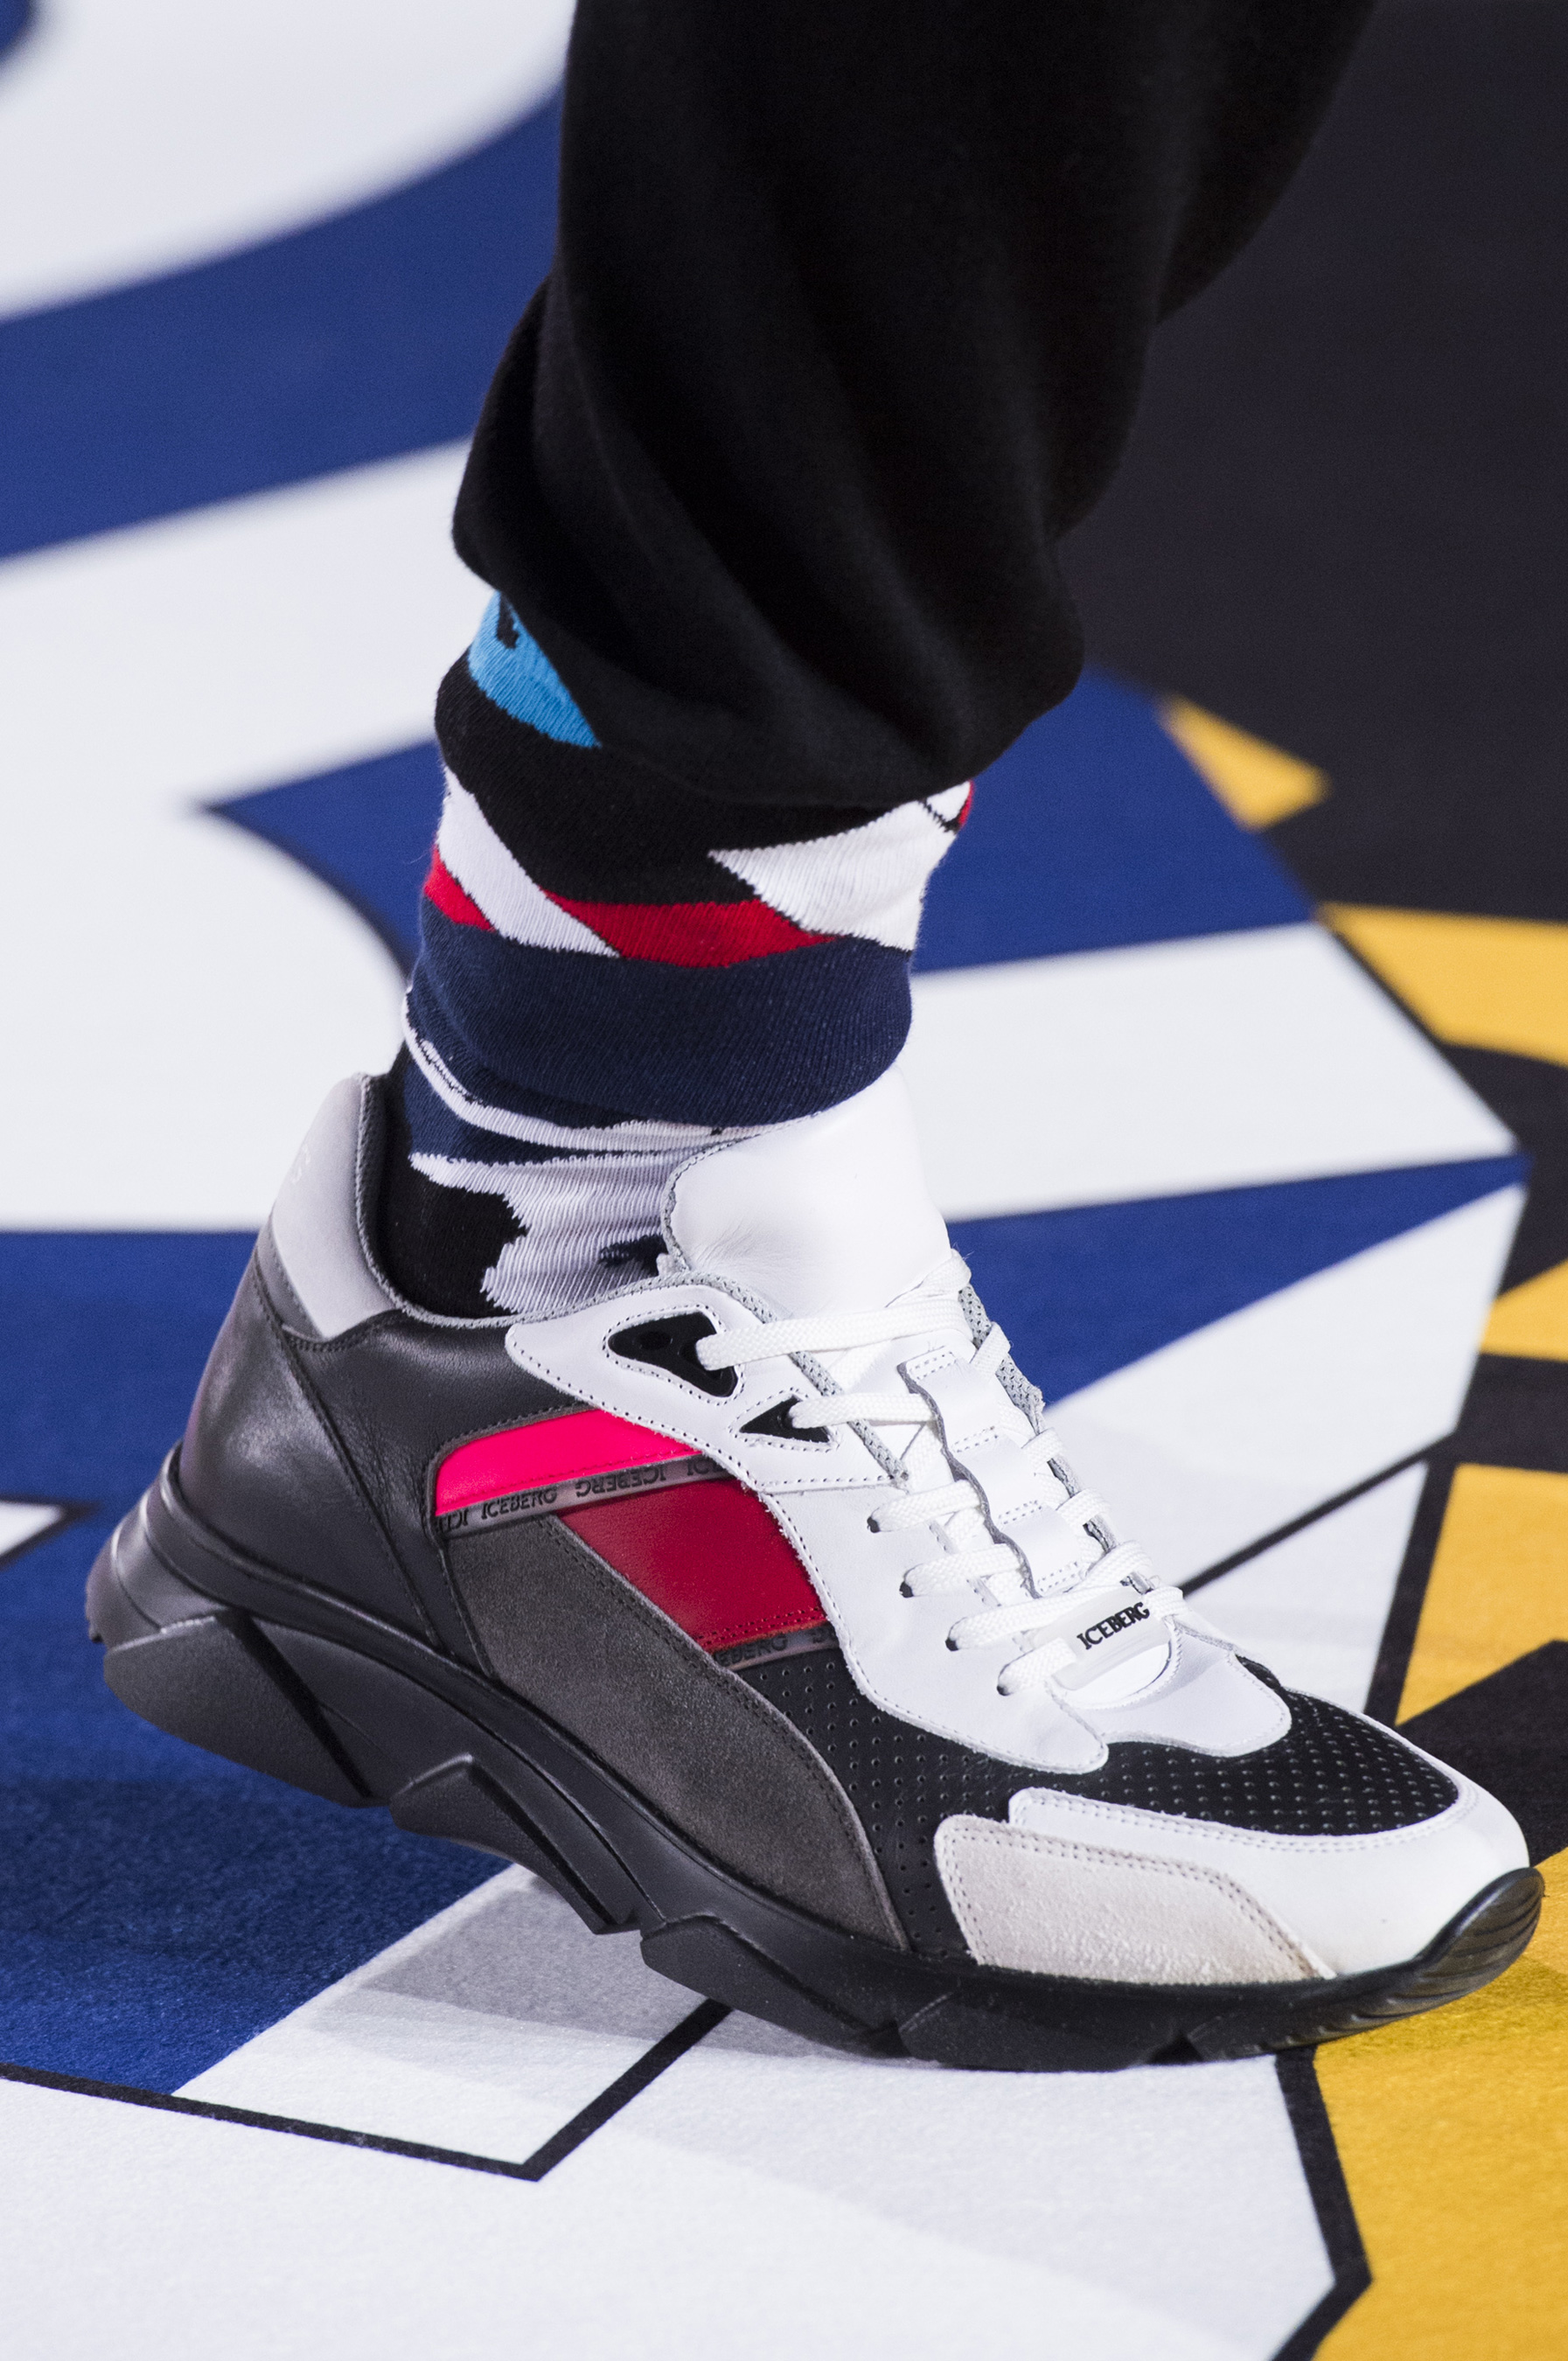 Iceberg Fall 2019 Men's Fashion Show details Details